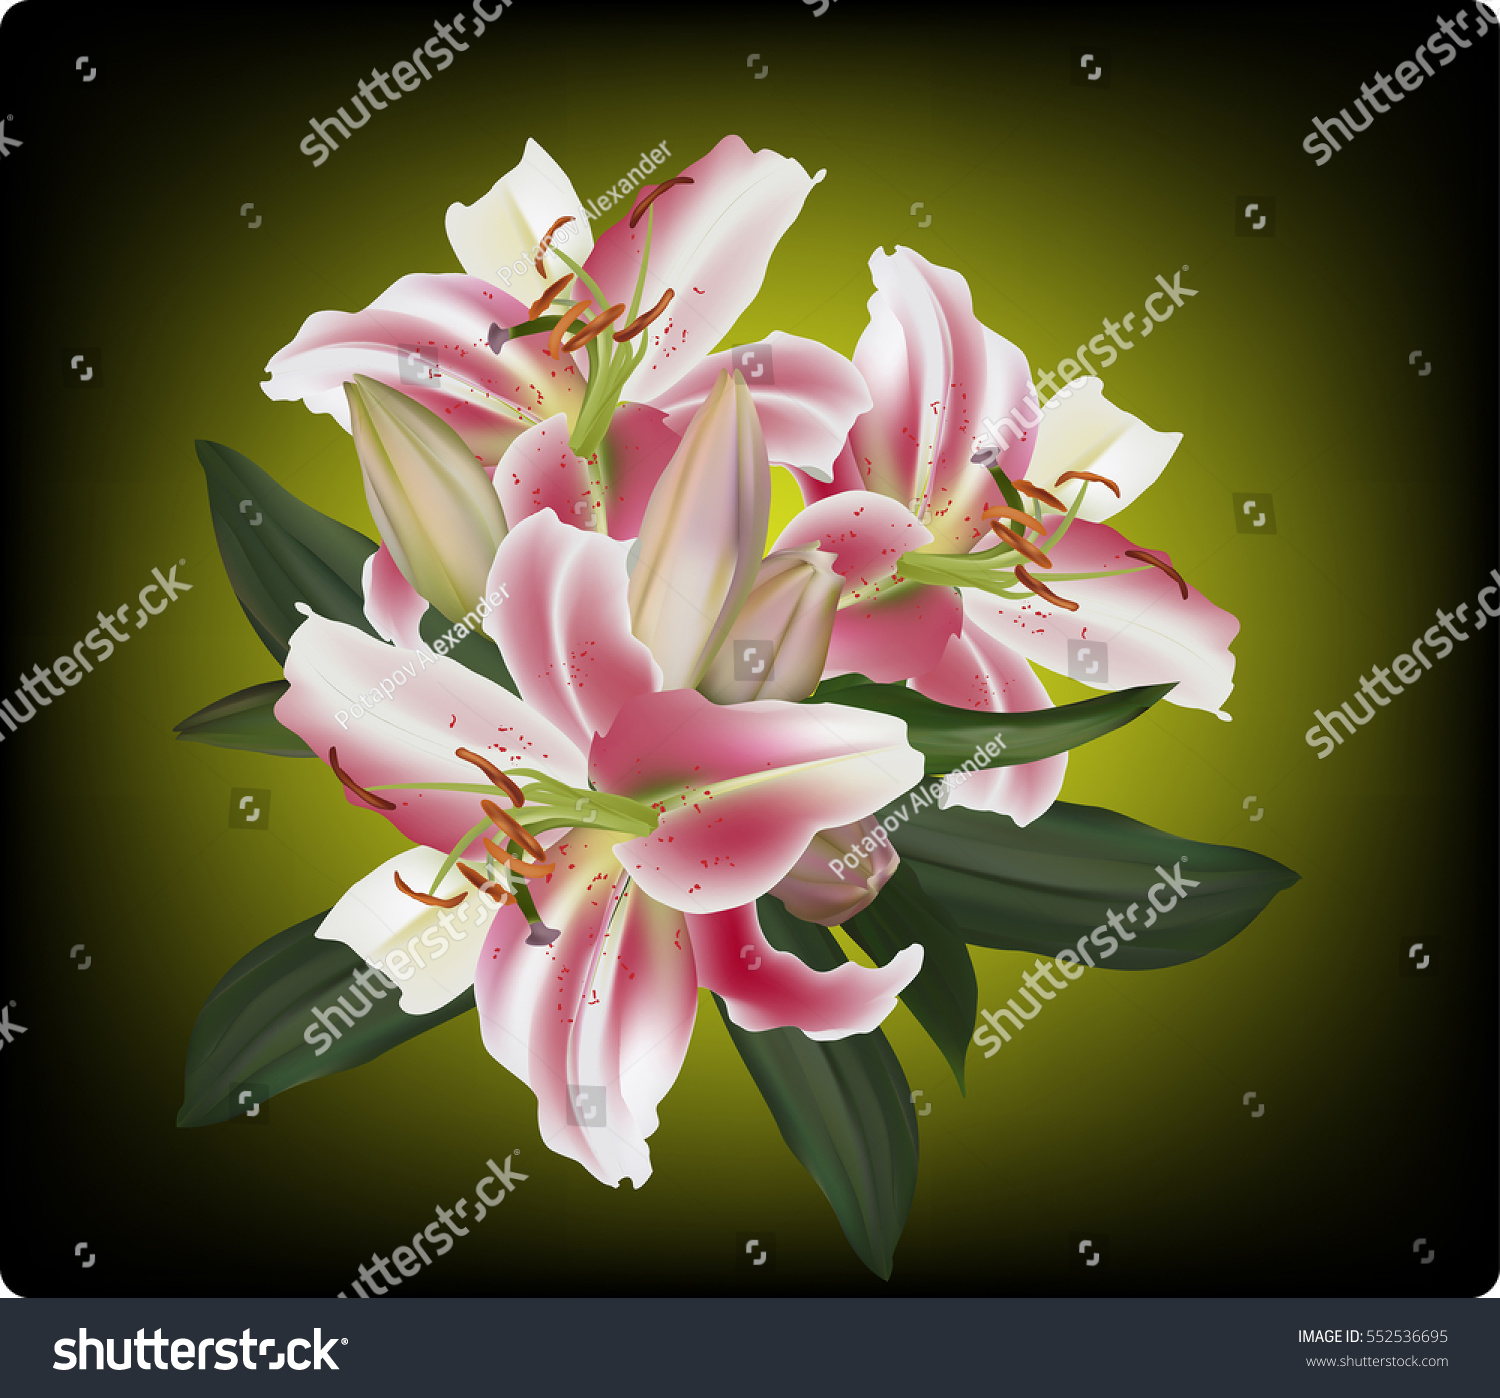 Illustration lily flower on dark background stock vector 552536695 illustration with lily flower on dark background izmirmasajfo